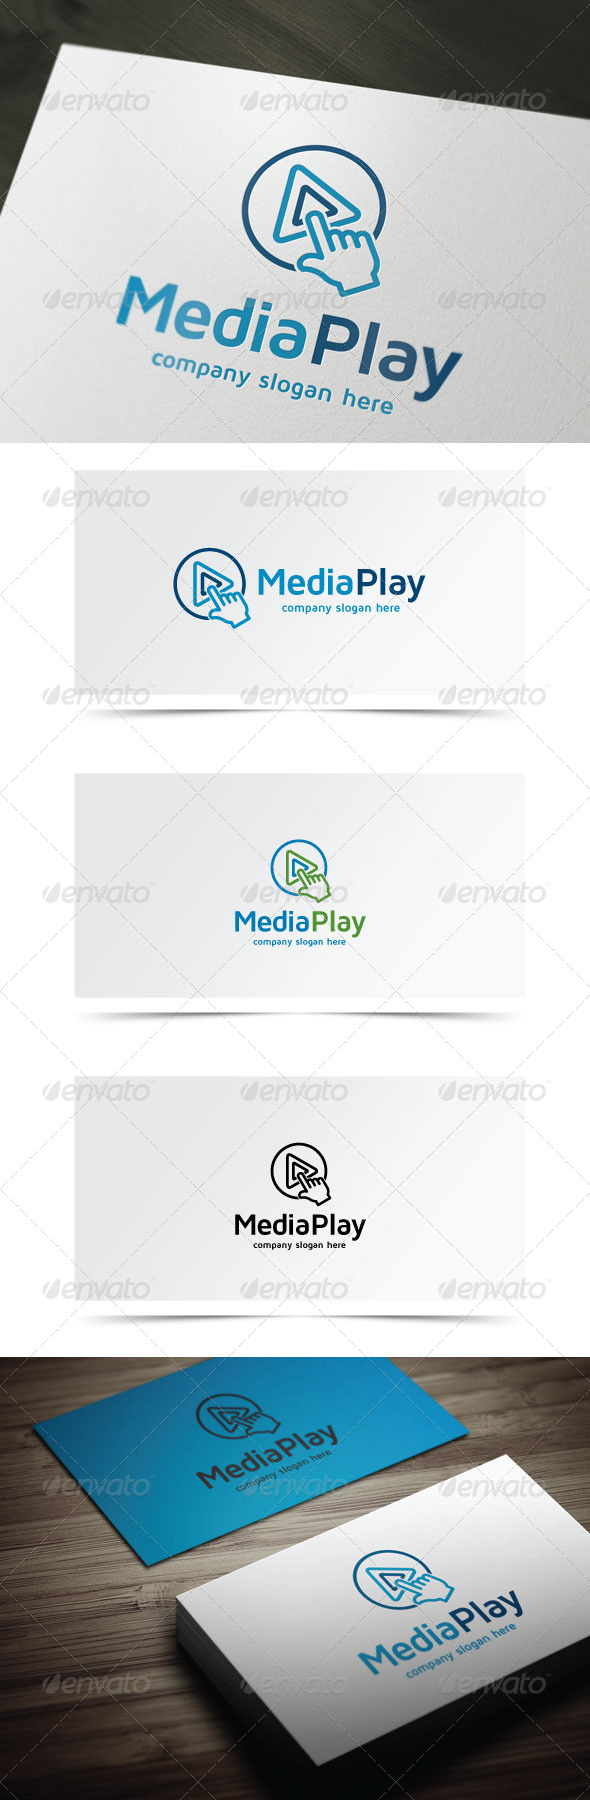 GraphicRiver Media Play 7362192